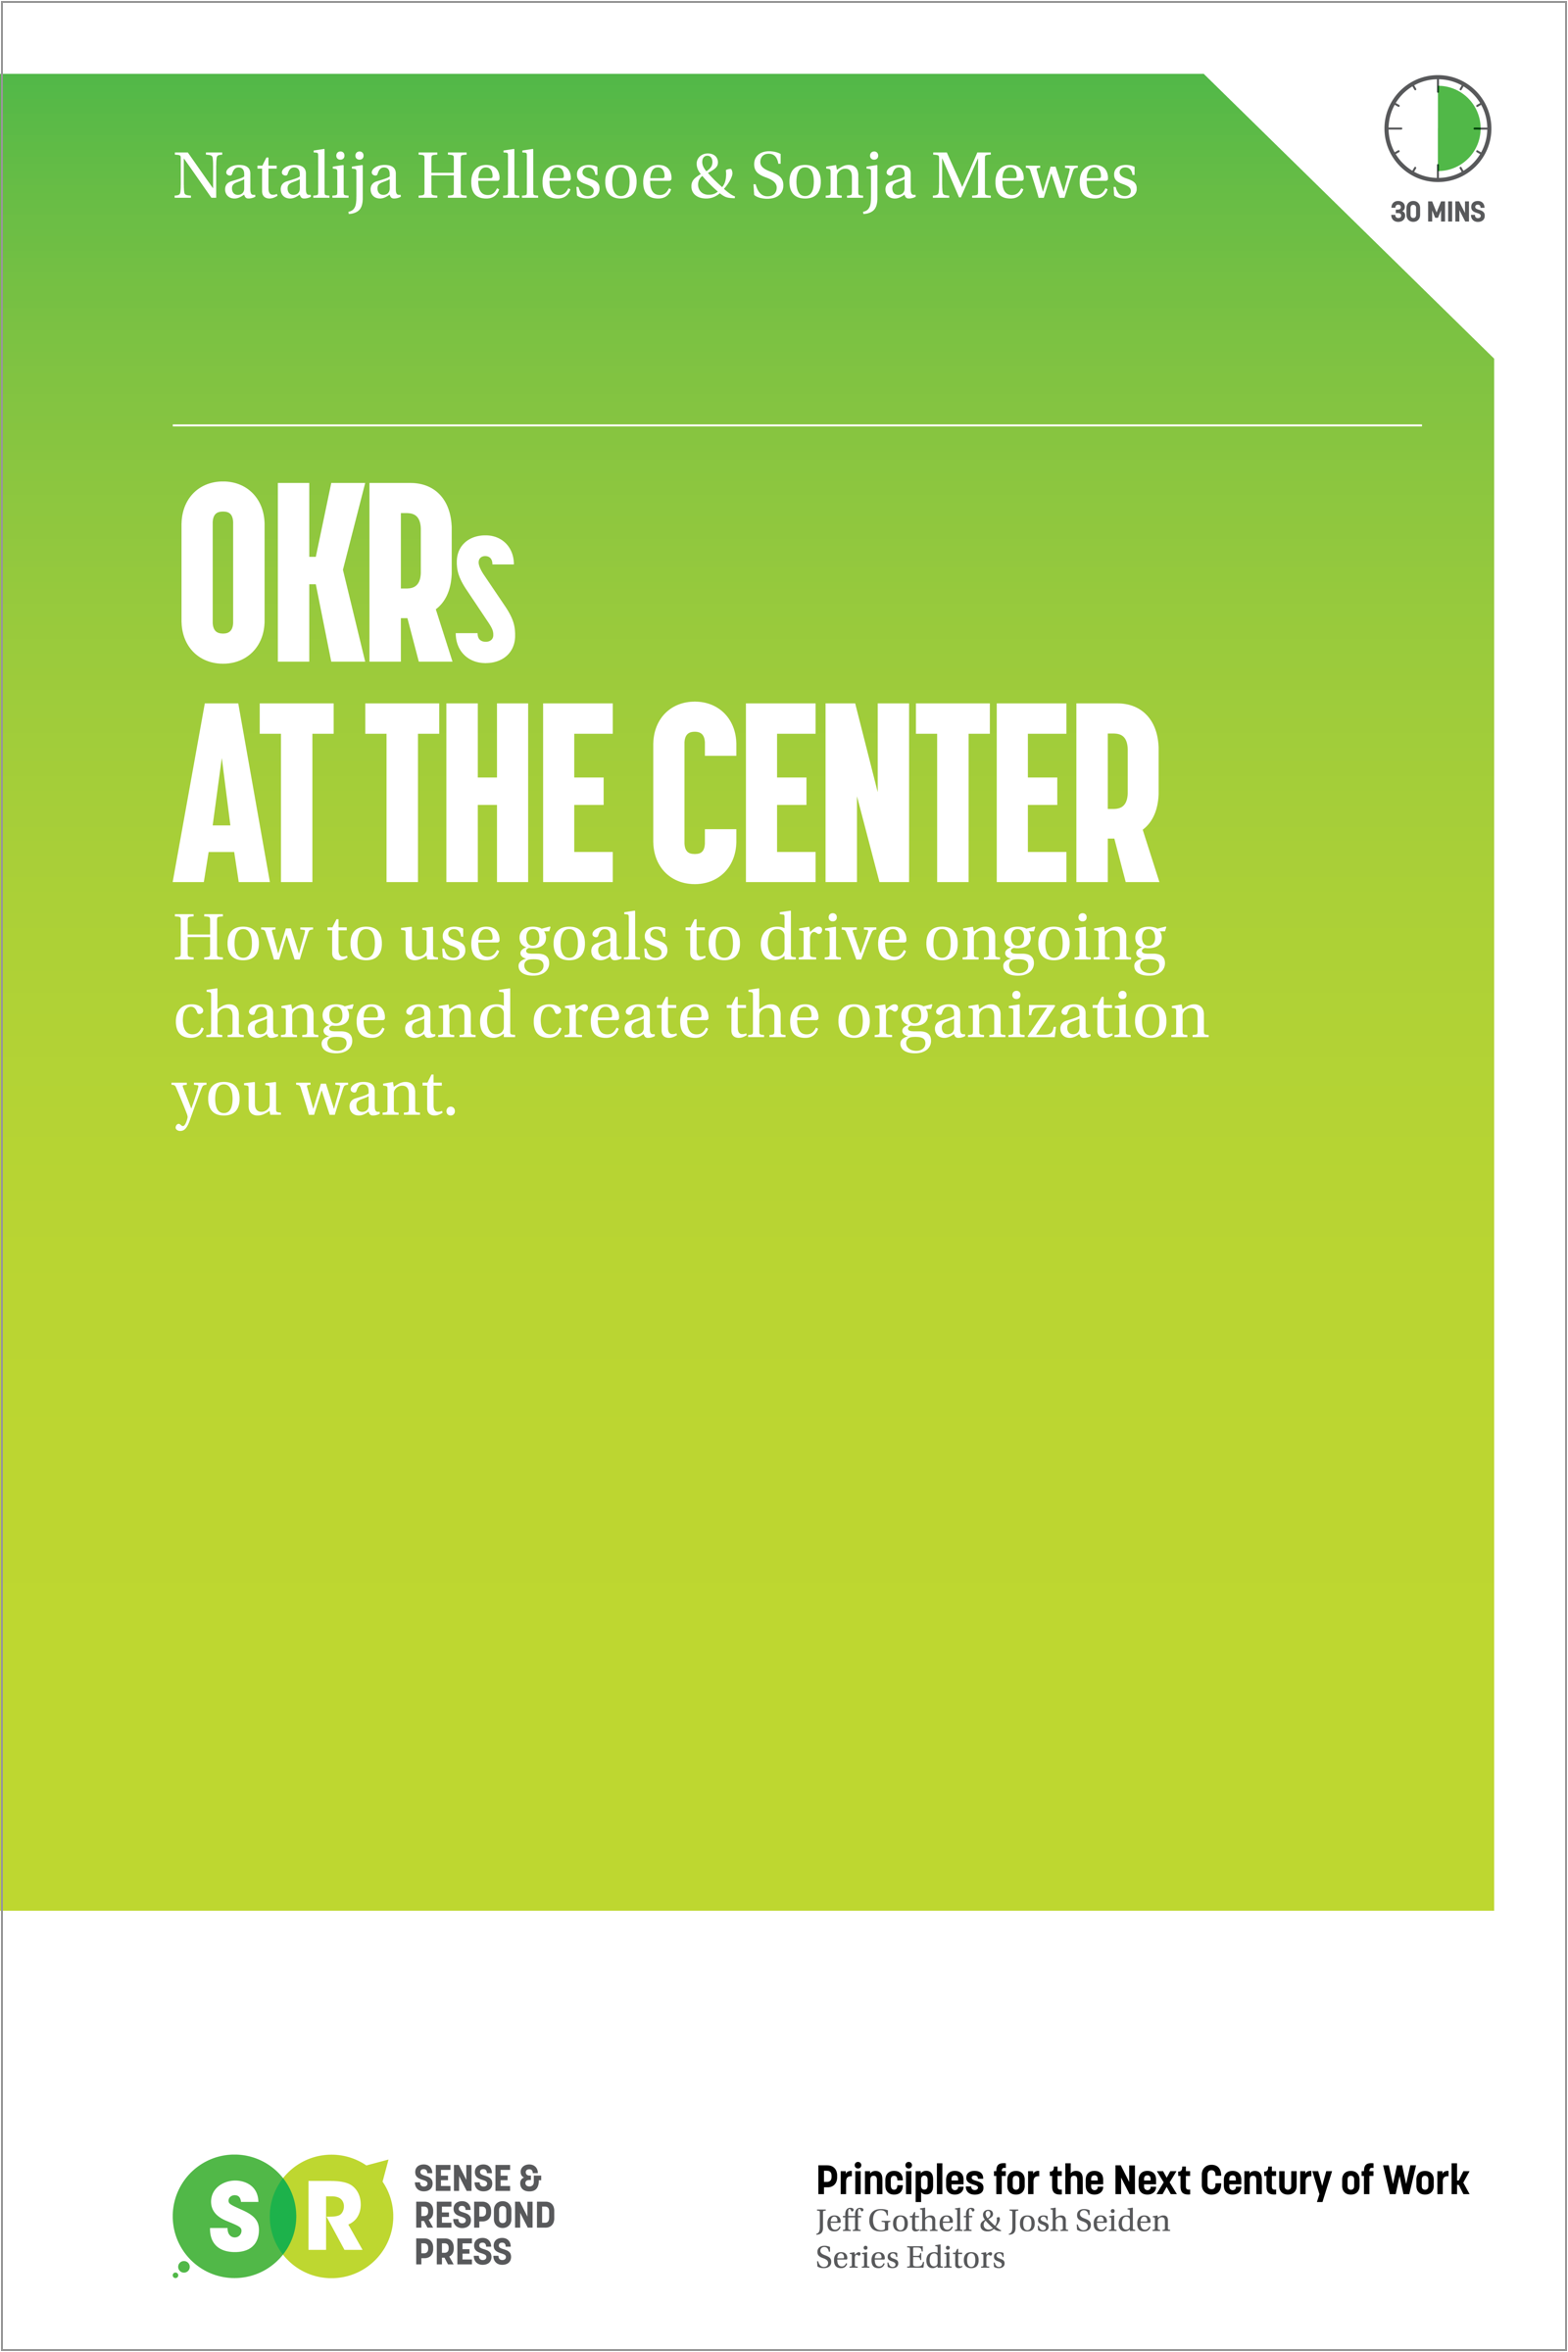 OKR at the center Book cover